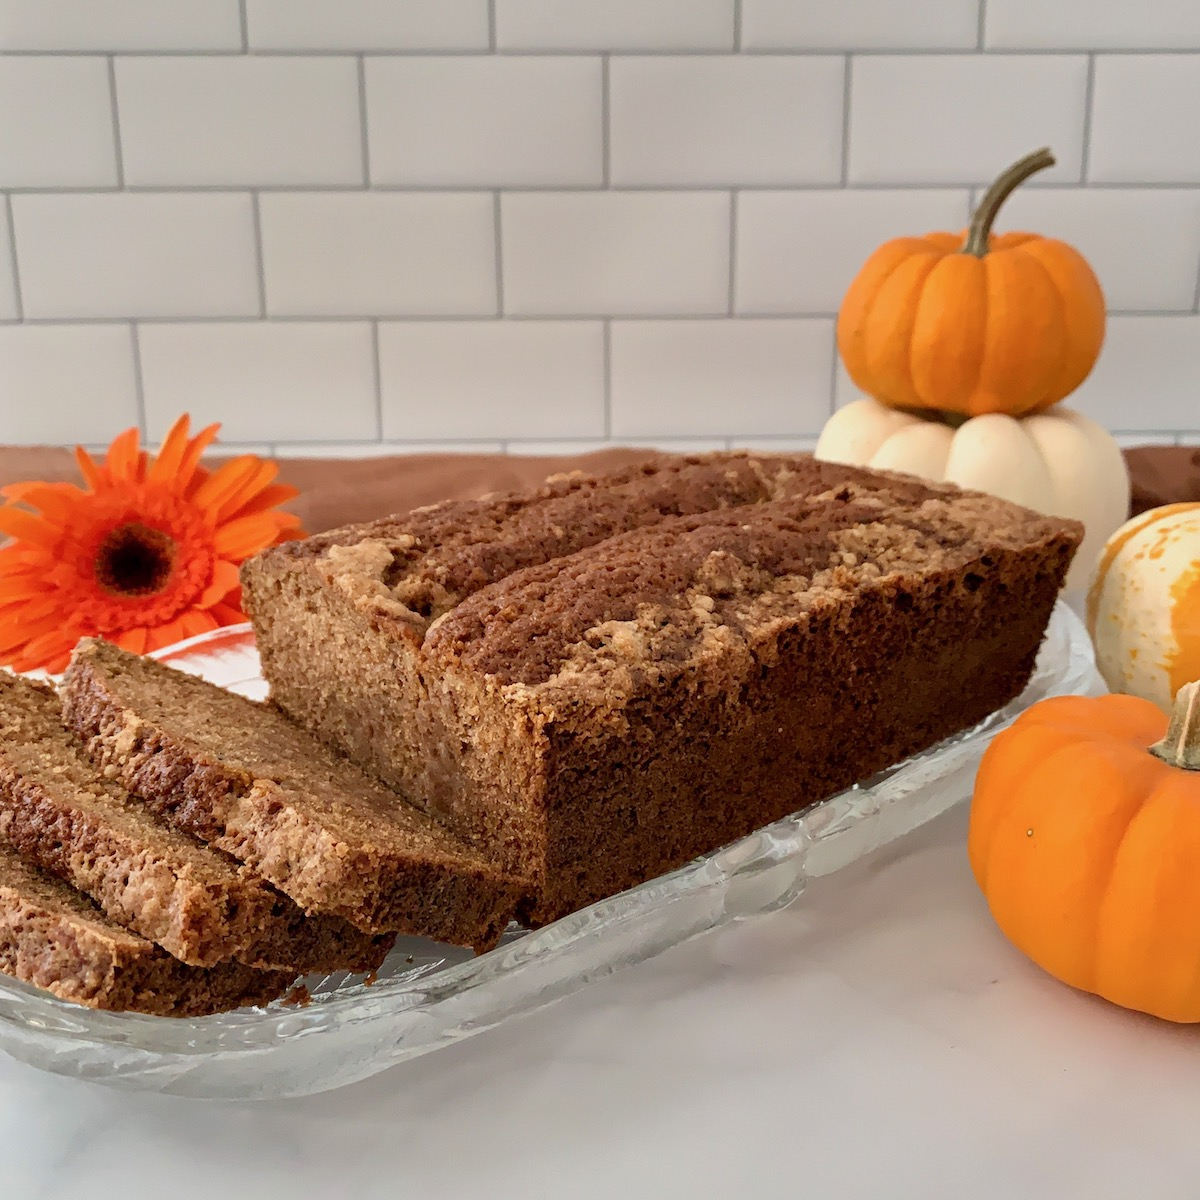 Sourdough Spice Cake sliced on plate with pumpkins